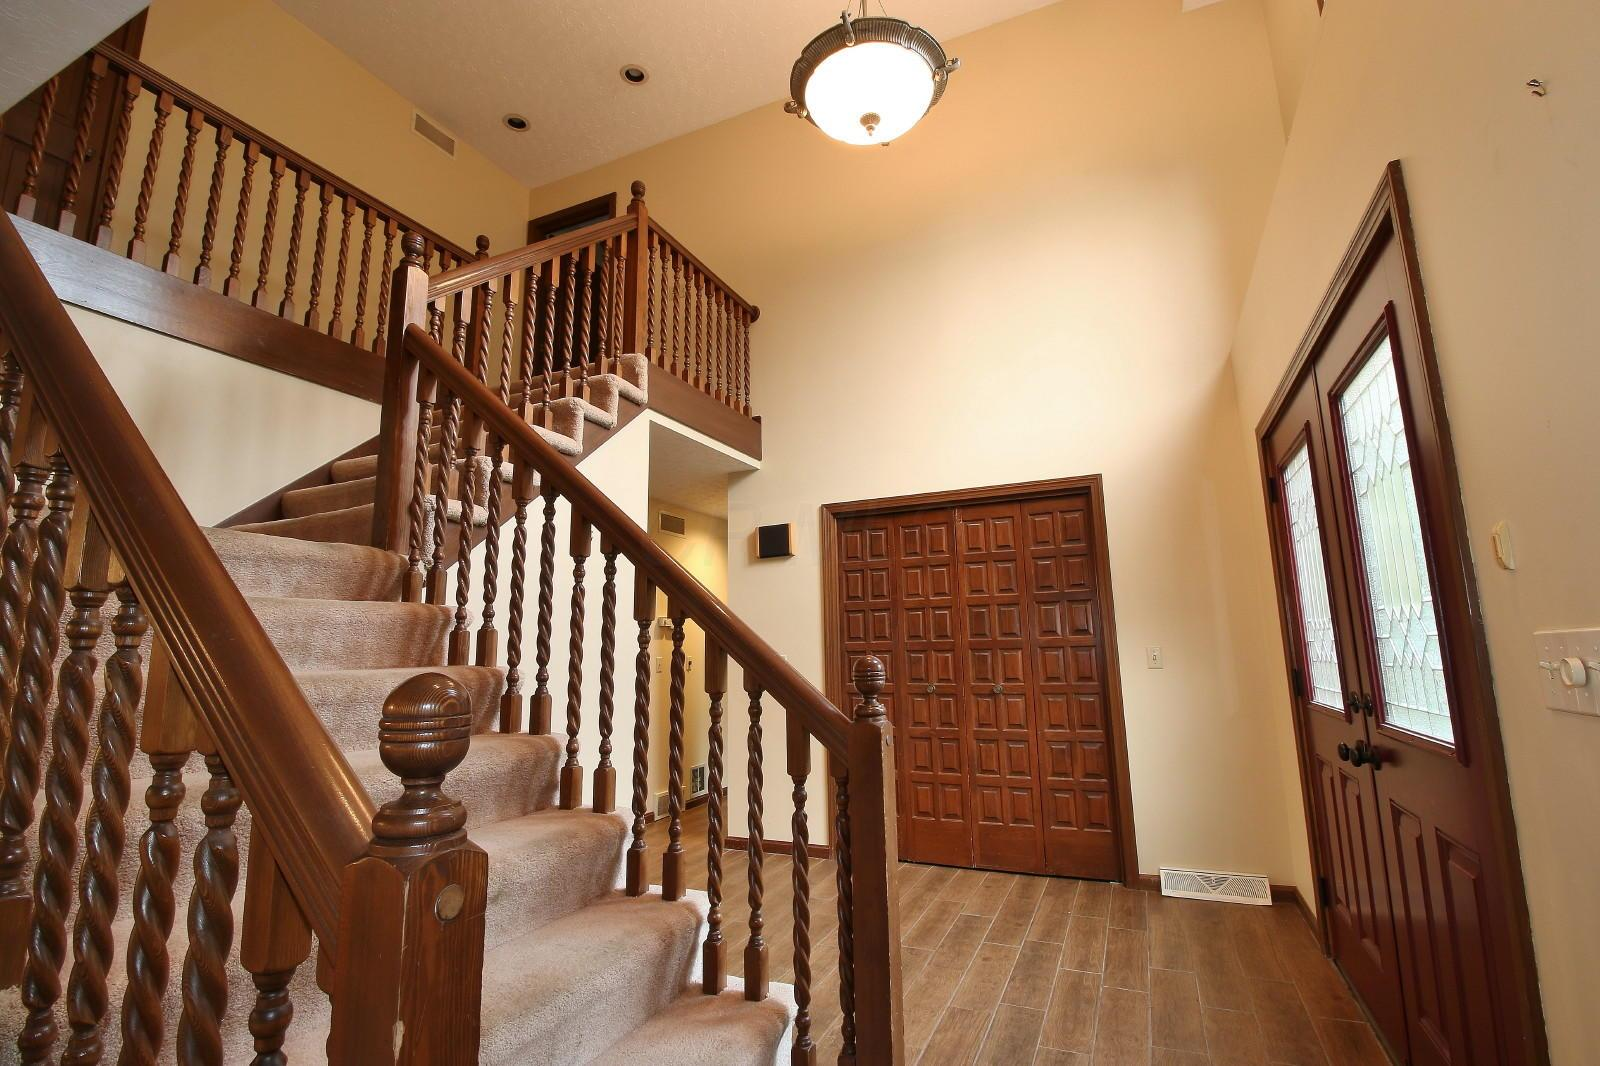 891 Southeast Court, Zanesville, Ohio 43701, 5 Bedrooms Bedrooms, ,4 BathroomsBathrooms,Residential,For Sale,Southeast,220019237